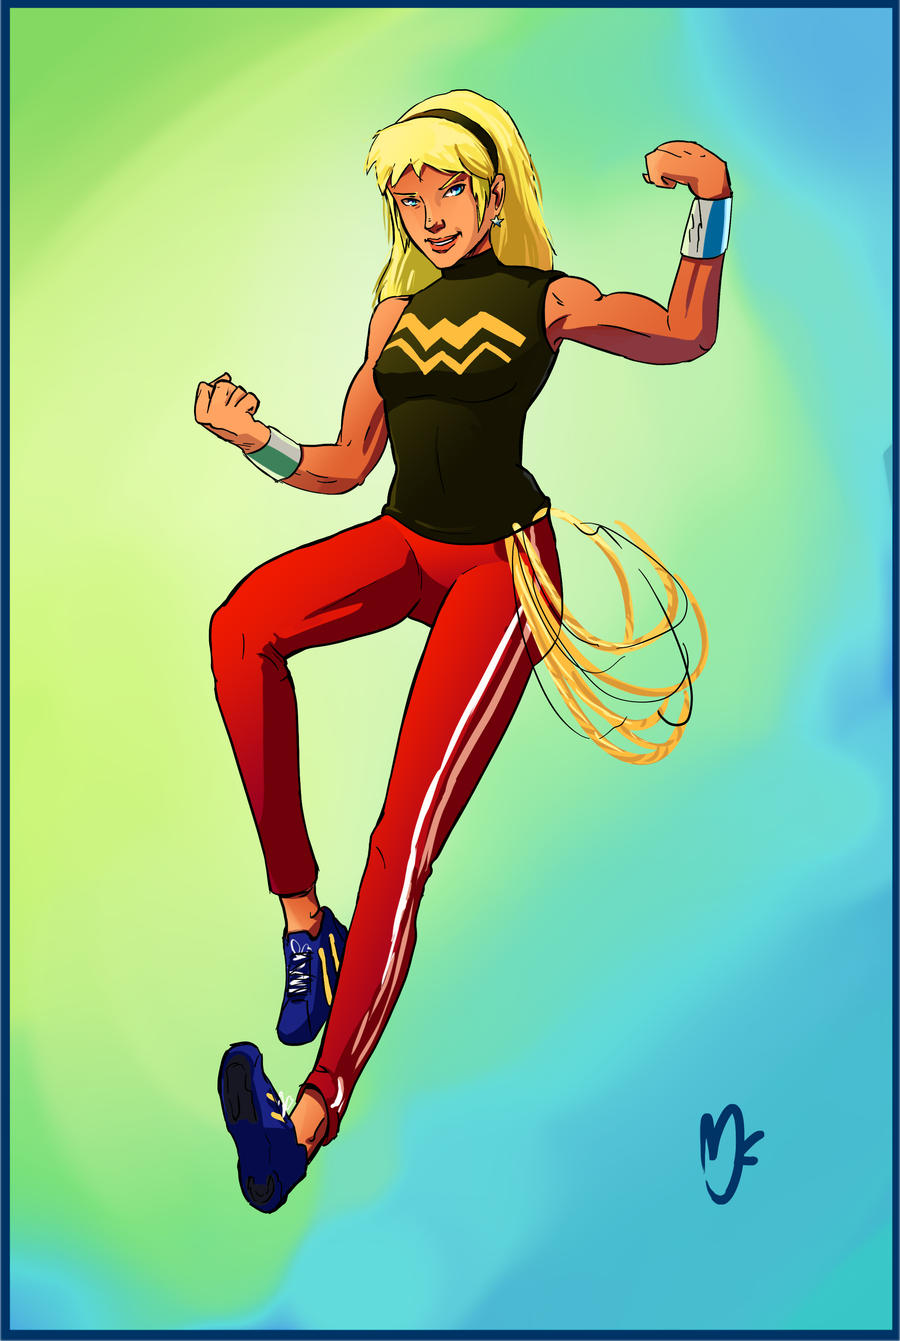 justice Robin wonder girl young